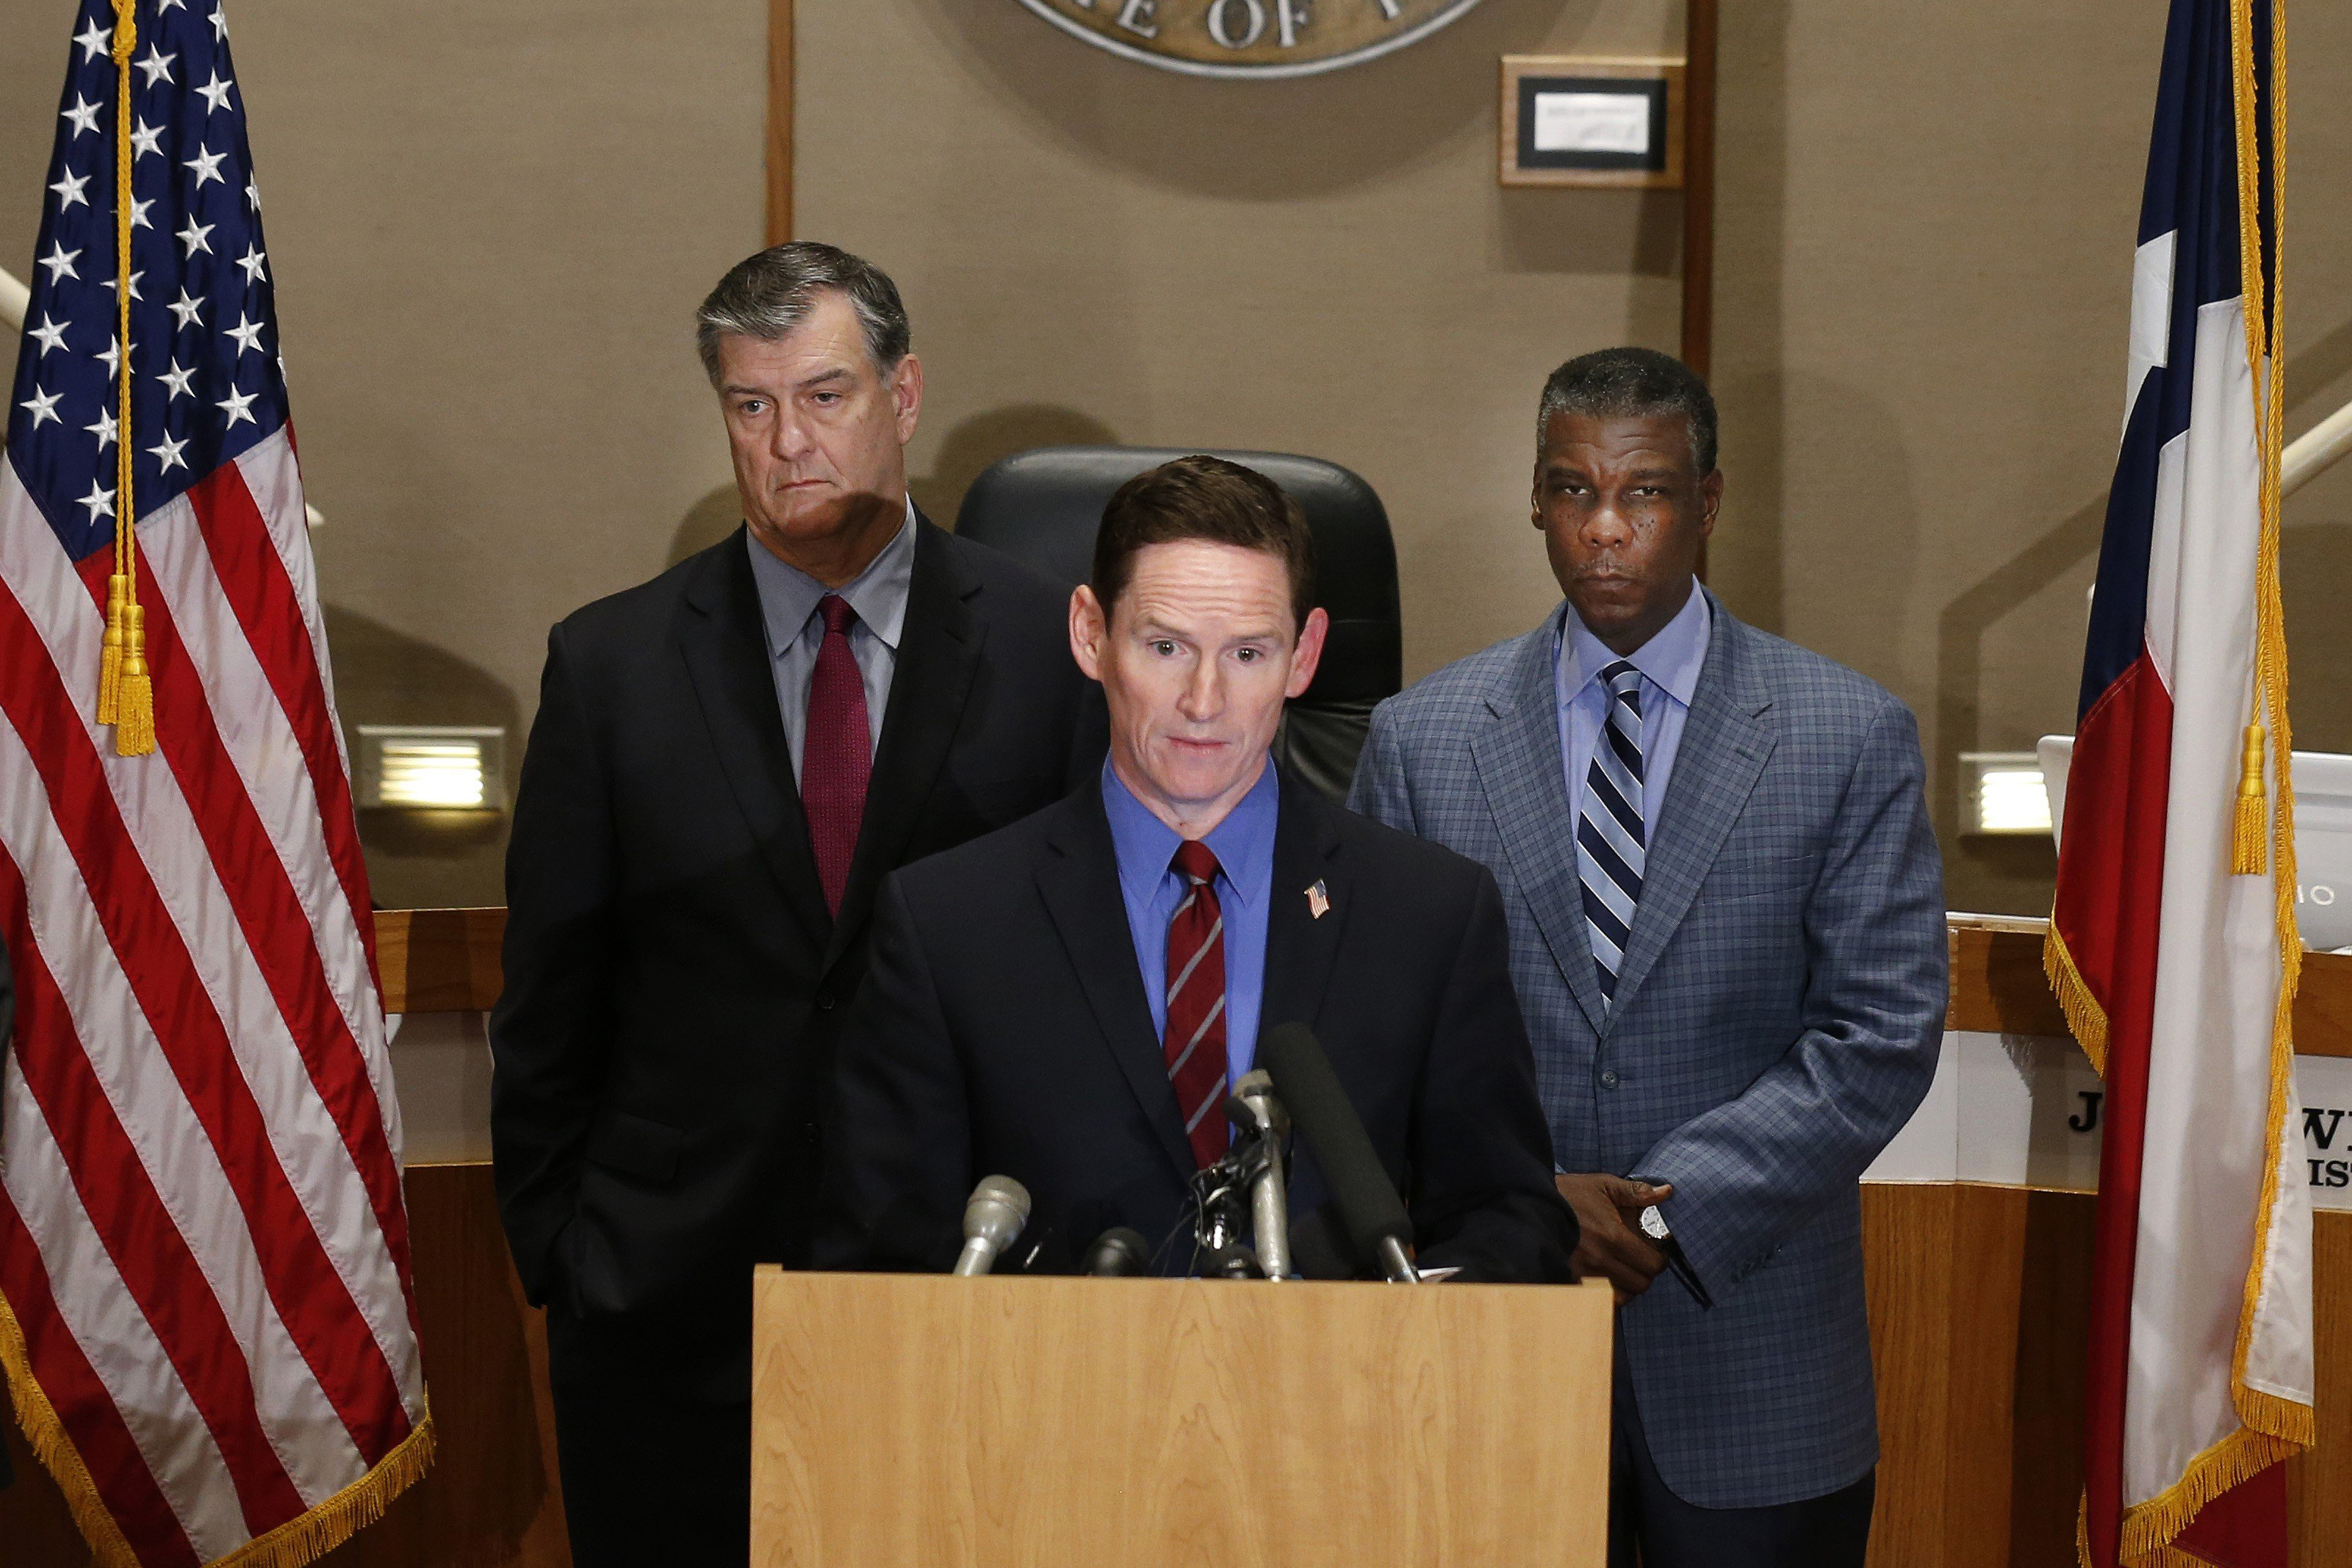 Dr. Daniel Varga, Chief Clinical Officer, Senior Executive Vice President, Dallas Mayor Mike Rawlings, Dallas County Judge Clay Jenkins and Dallas County Human and Health Service Director Zach Thompson held a news conference about the new Ebola case on Oct. 15, 2014 at Dallas County Commissioners Court in Dallas.